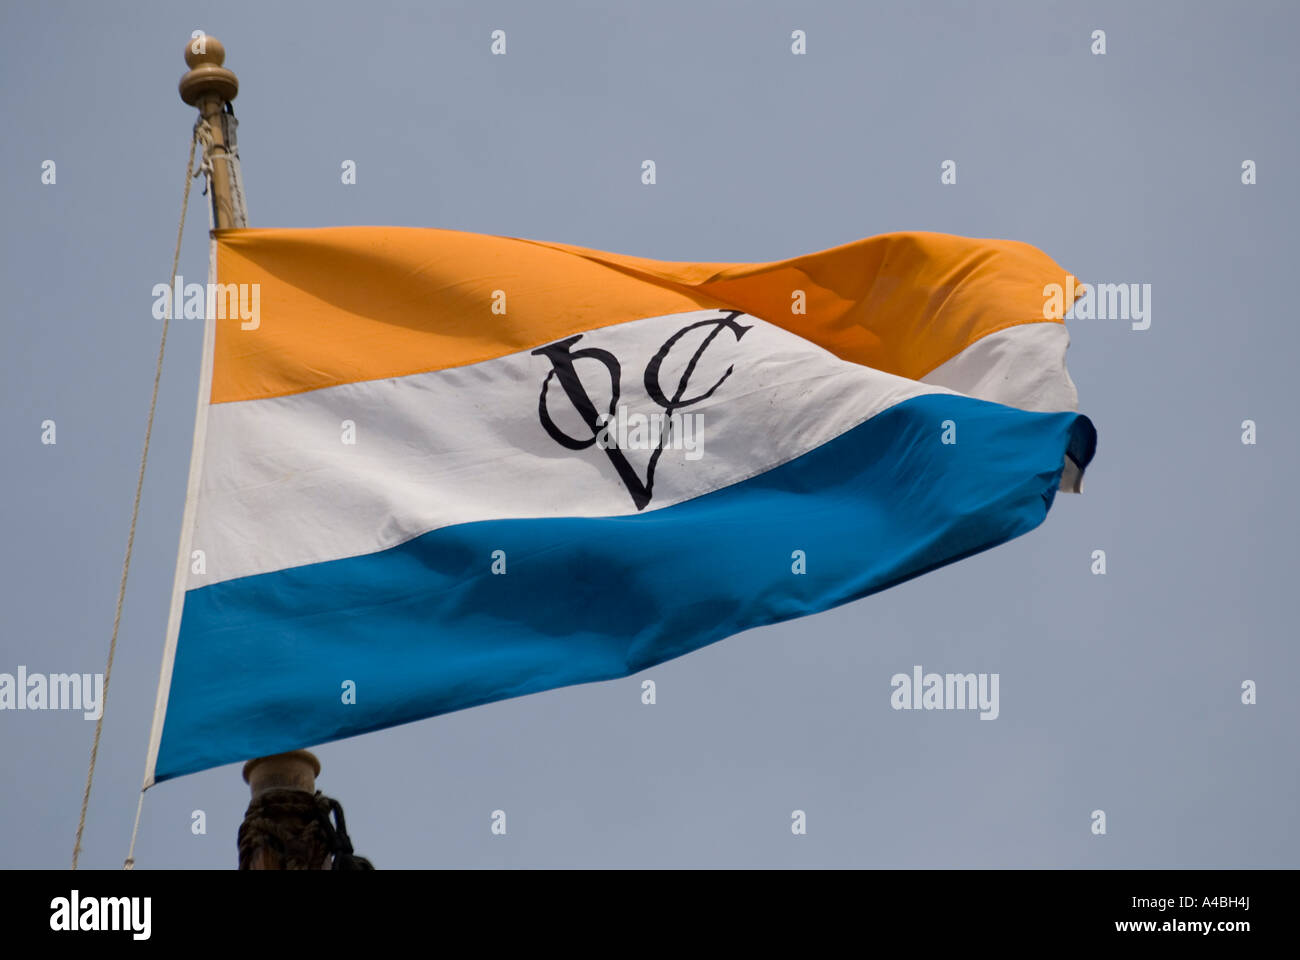 The flag of the Dutch East India Company flying on the replica ship The Duyfken - Stock Image